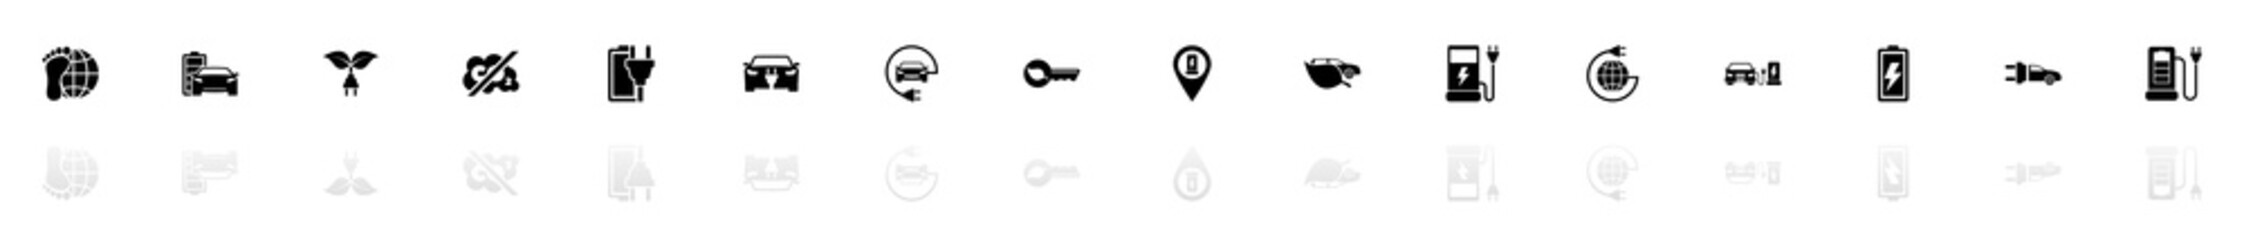 Electro Car icons - Black horizontal Illustration symbol on White Background with a mirror Shadow reflection. Flat Vector Icon.